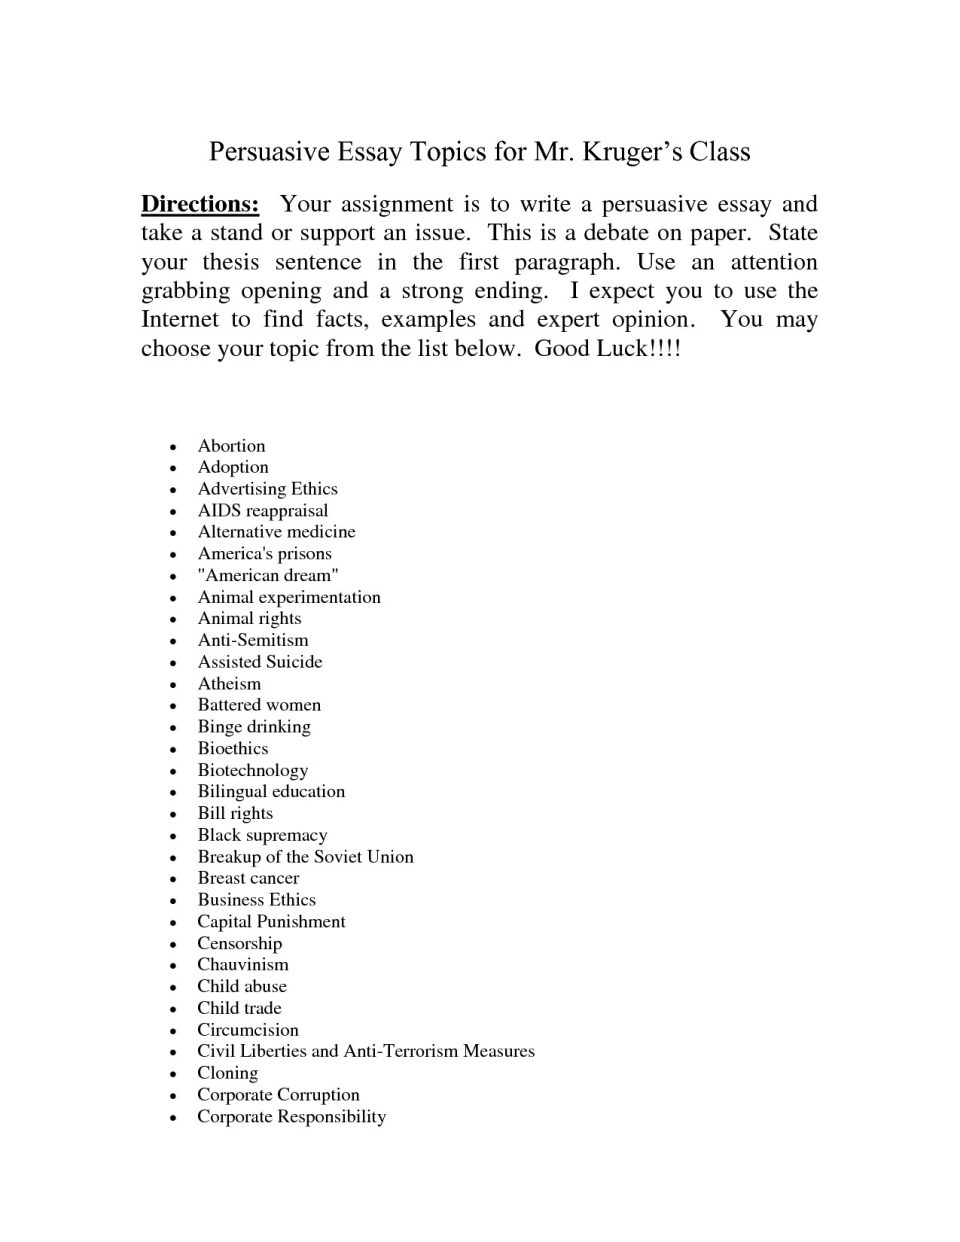 001 Topic For Essay Barca Fontanacountryinn Within Good Persuasive Narrative Topics To Write Abo Easy About Personal Descriptive Research Paper Informative Synthesis College Fantastic Computer Science World History High School Students Full